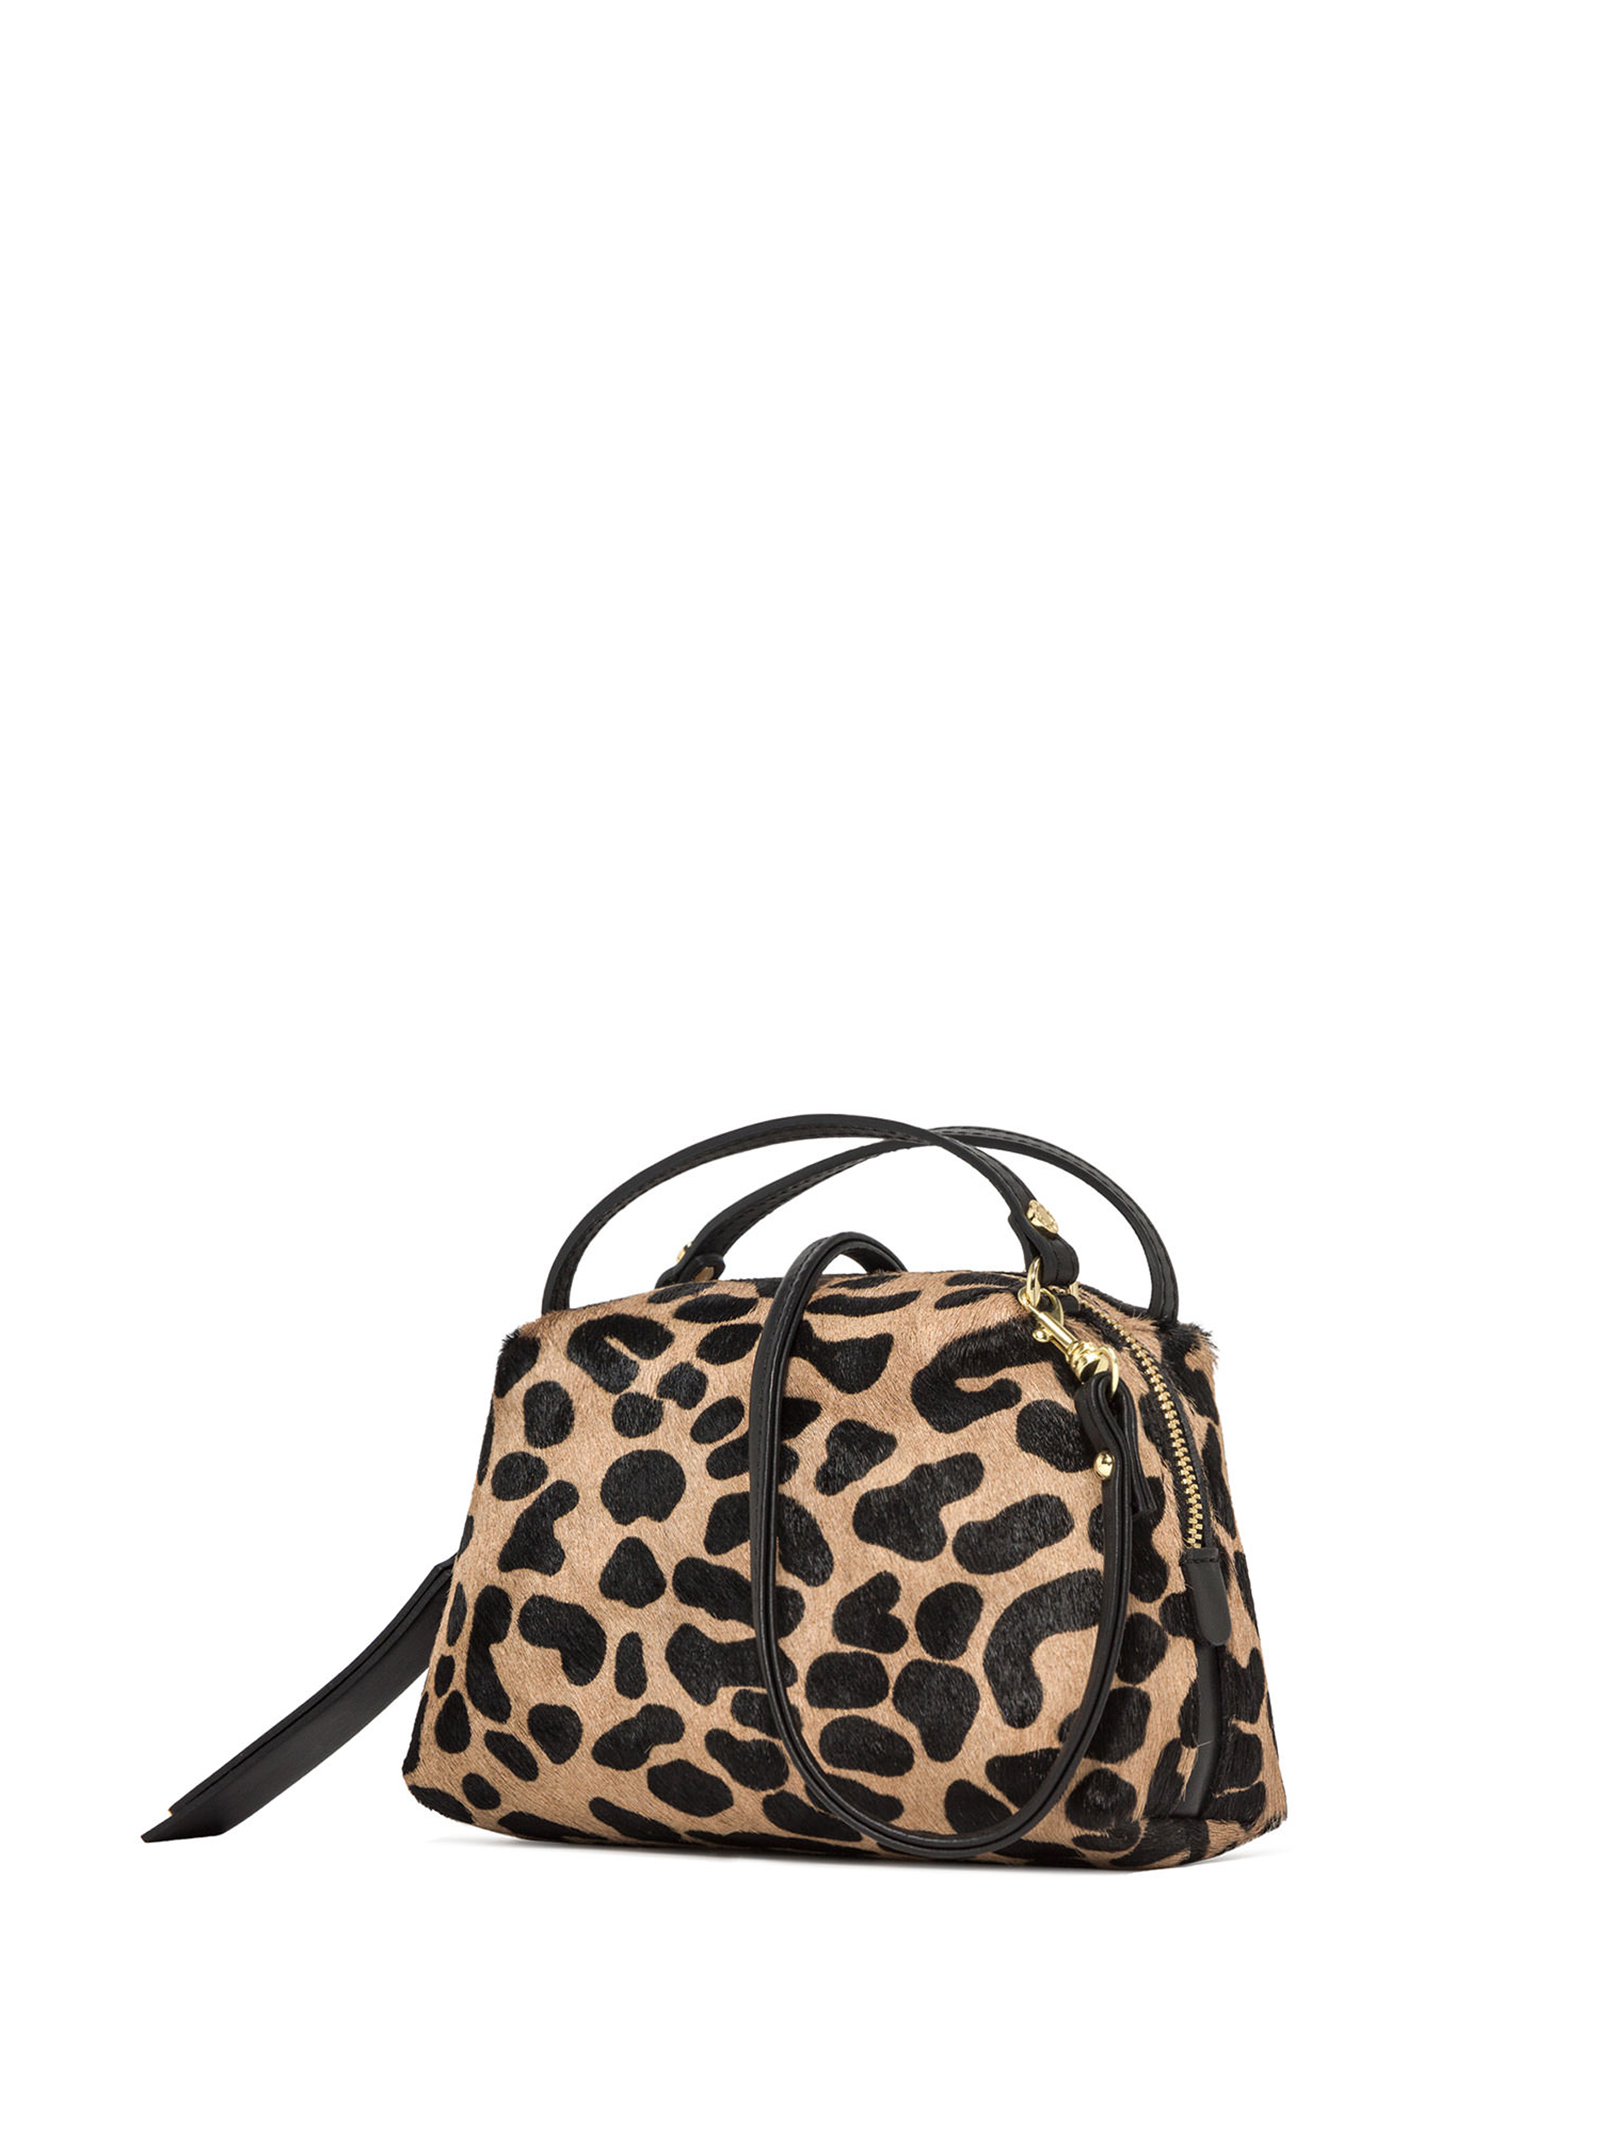 Women's Clutch Bag Mini Alifa In Leopard Pony Skin And Black Leather with Double Handles and Matching Adjustable And Detachable Cross-body Strap Gianni Chiarini   Bags and backpacks   BS814510730